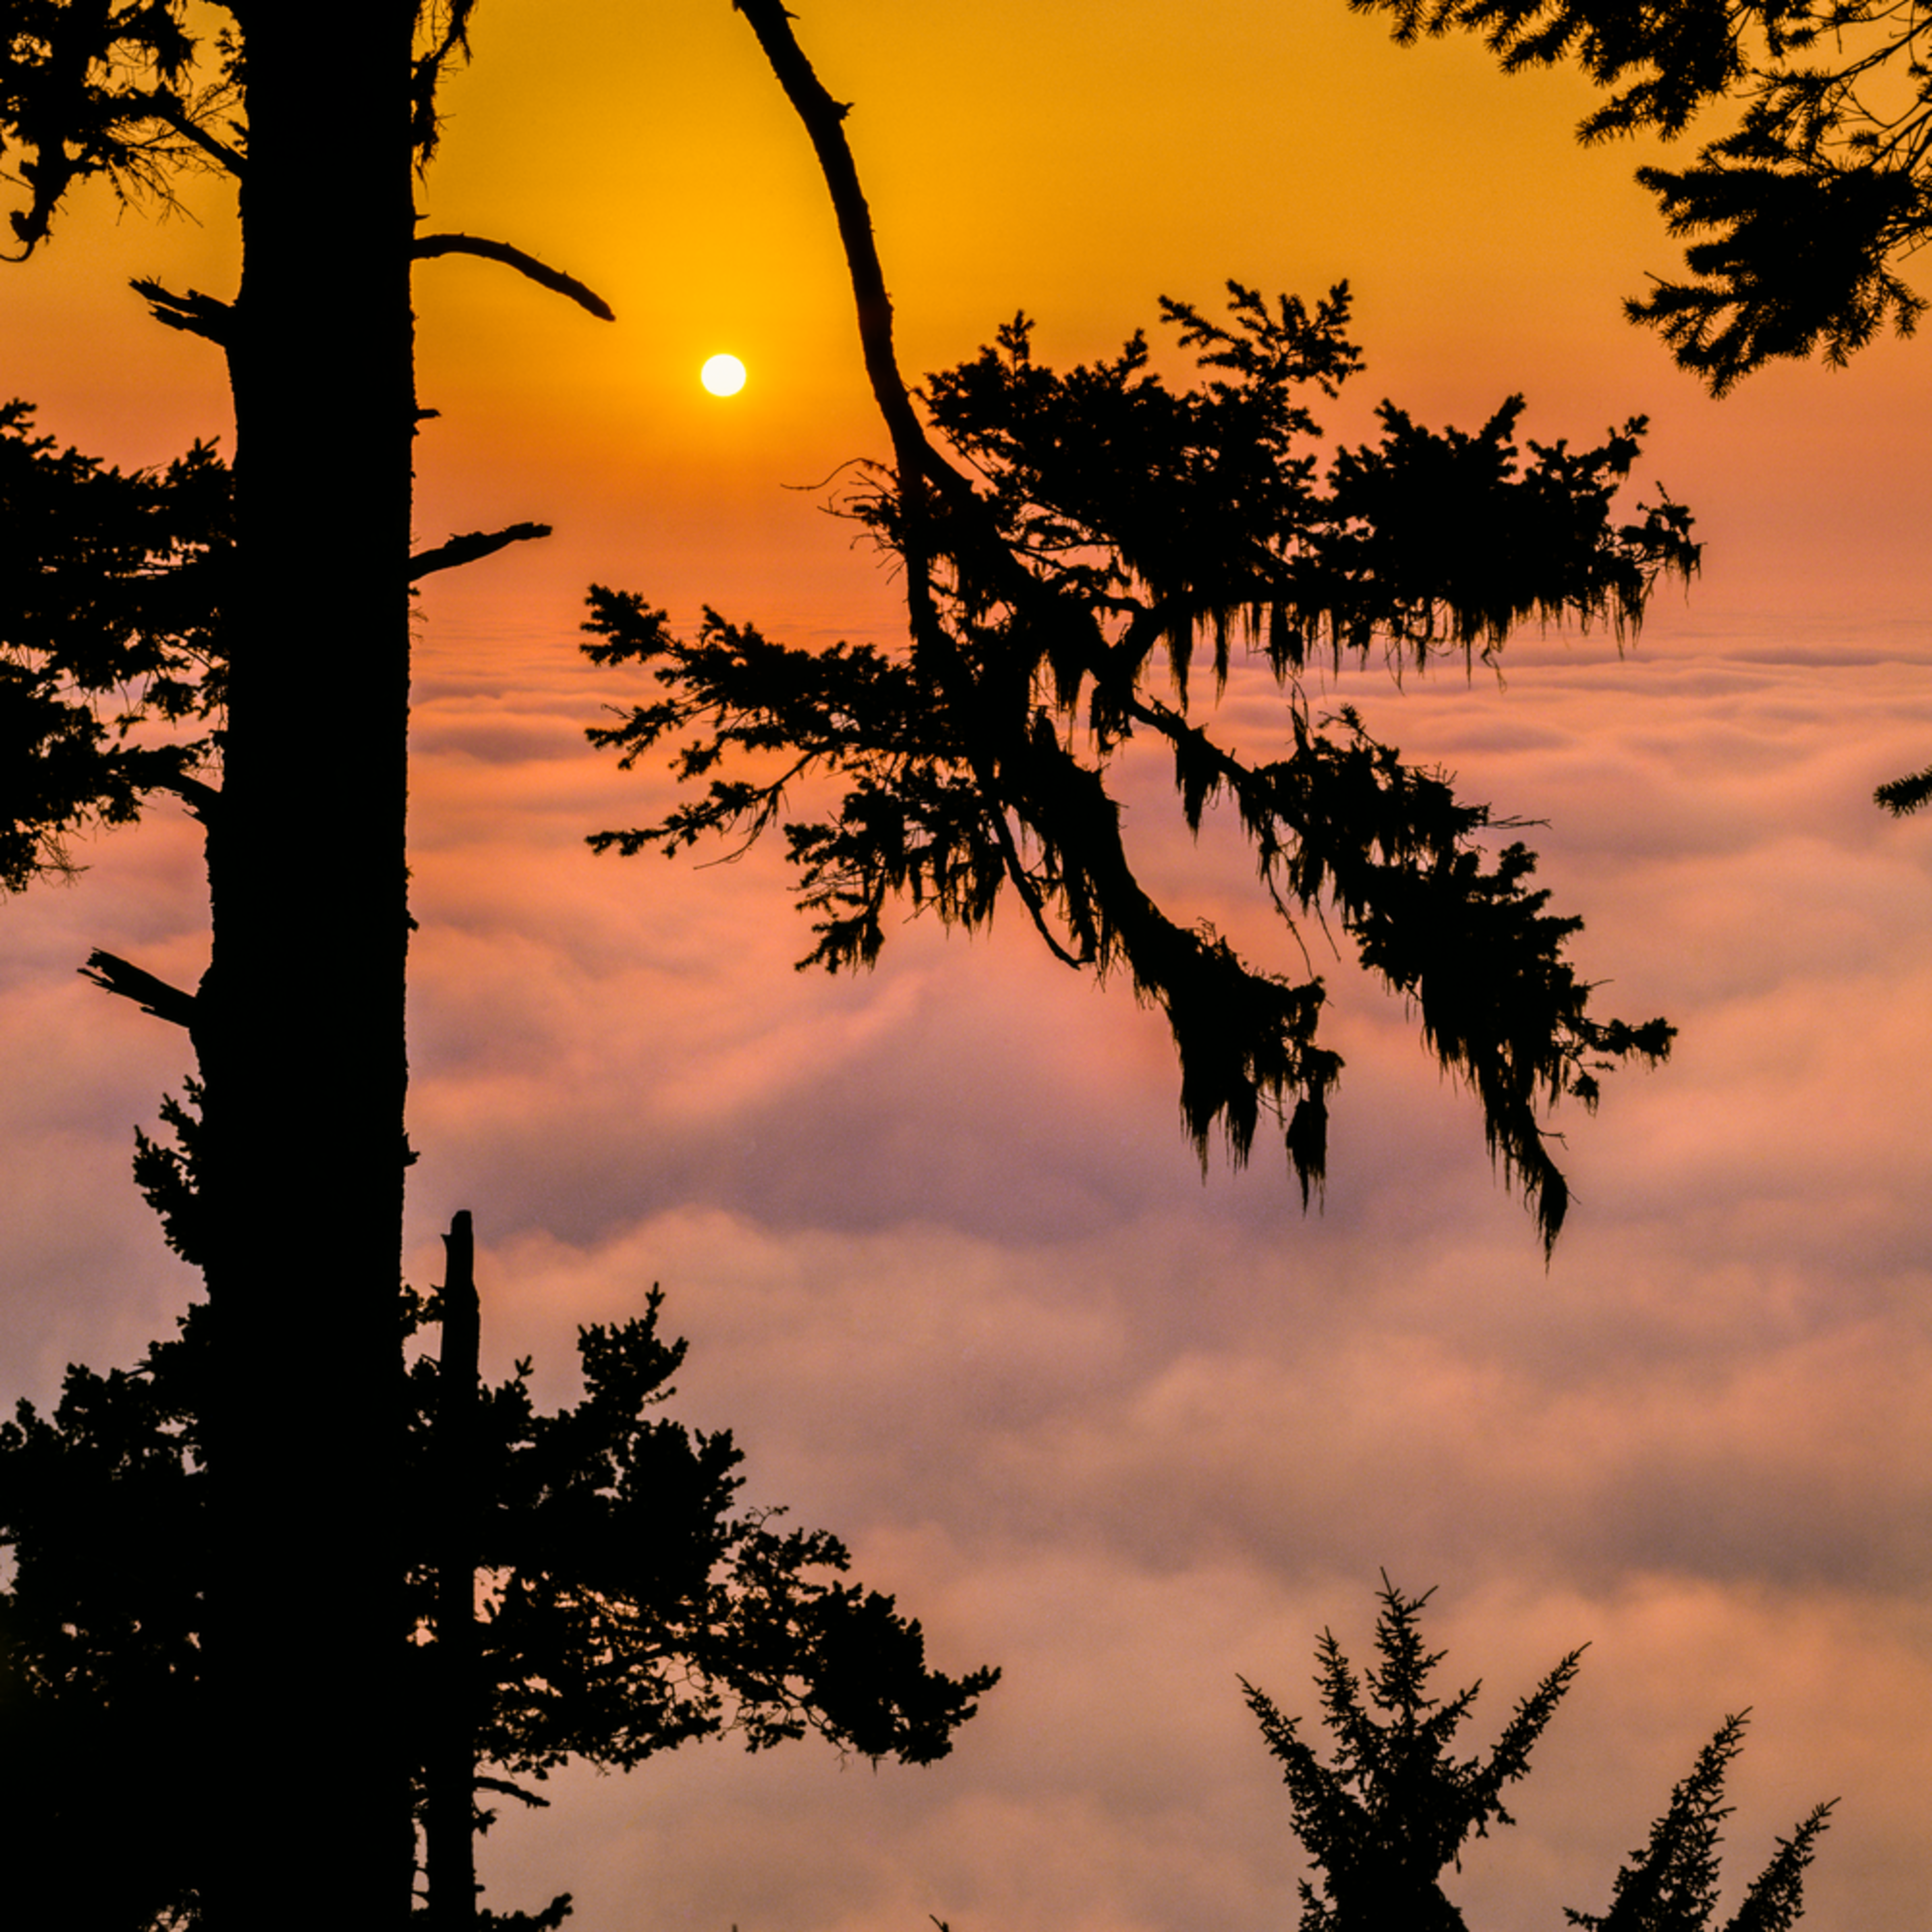 Redwood silhouette sunset above the clouds final umsoq9